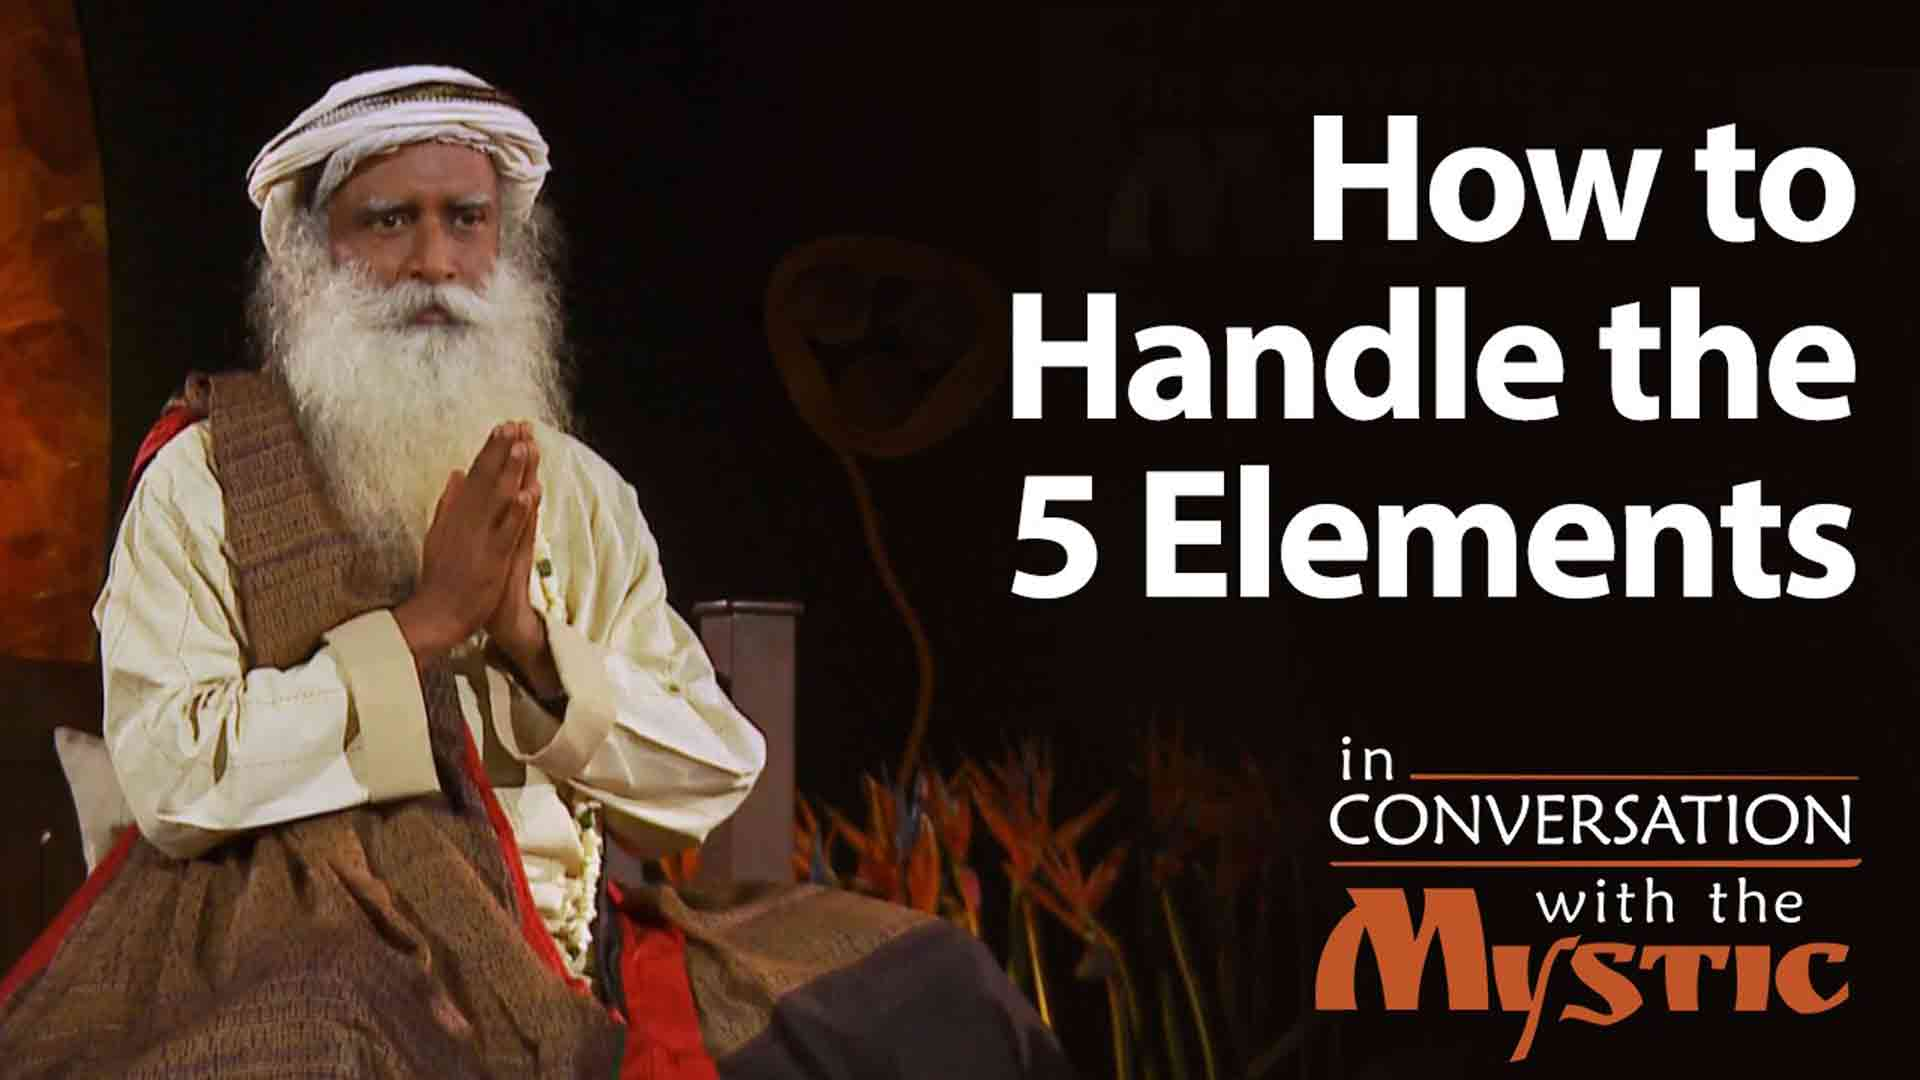 How to Handle the 5 Elements